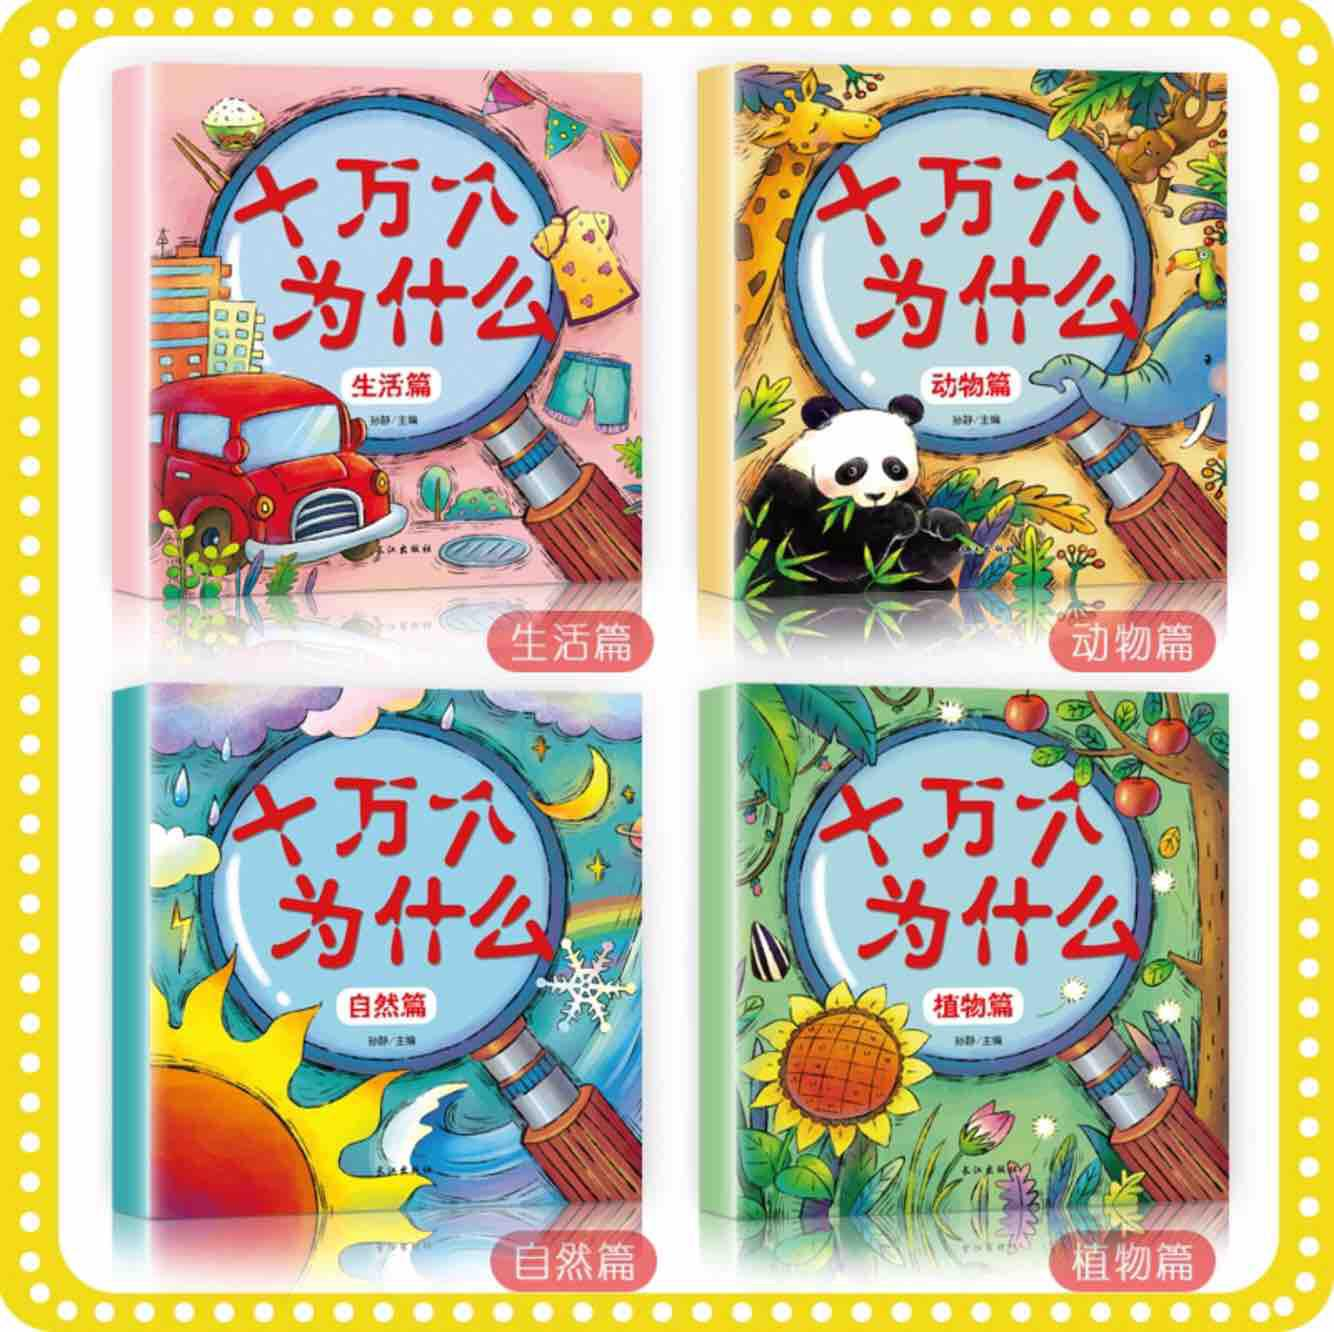 十万个为什么, million whys Chinese encylopedia for kids 3 -12 years